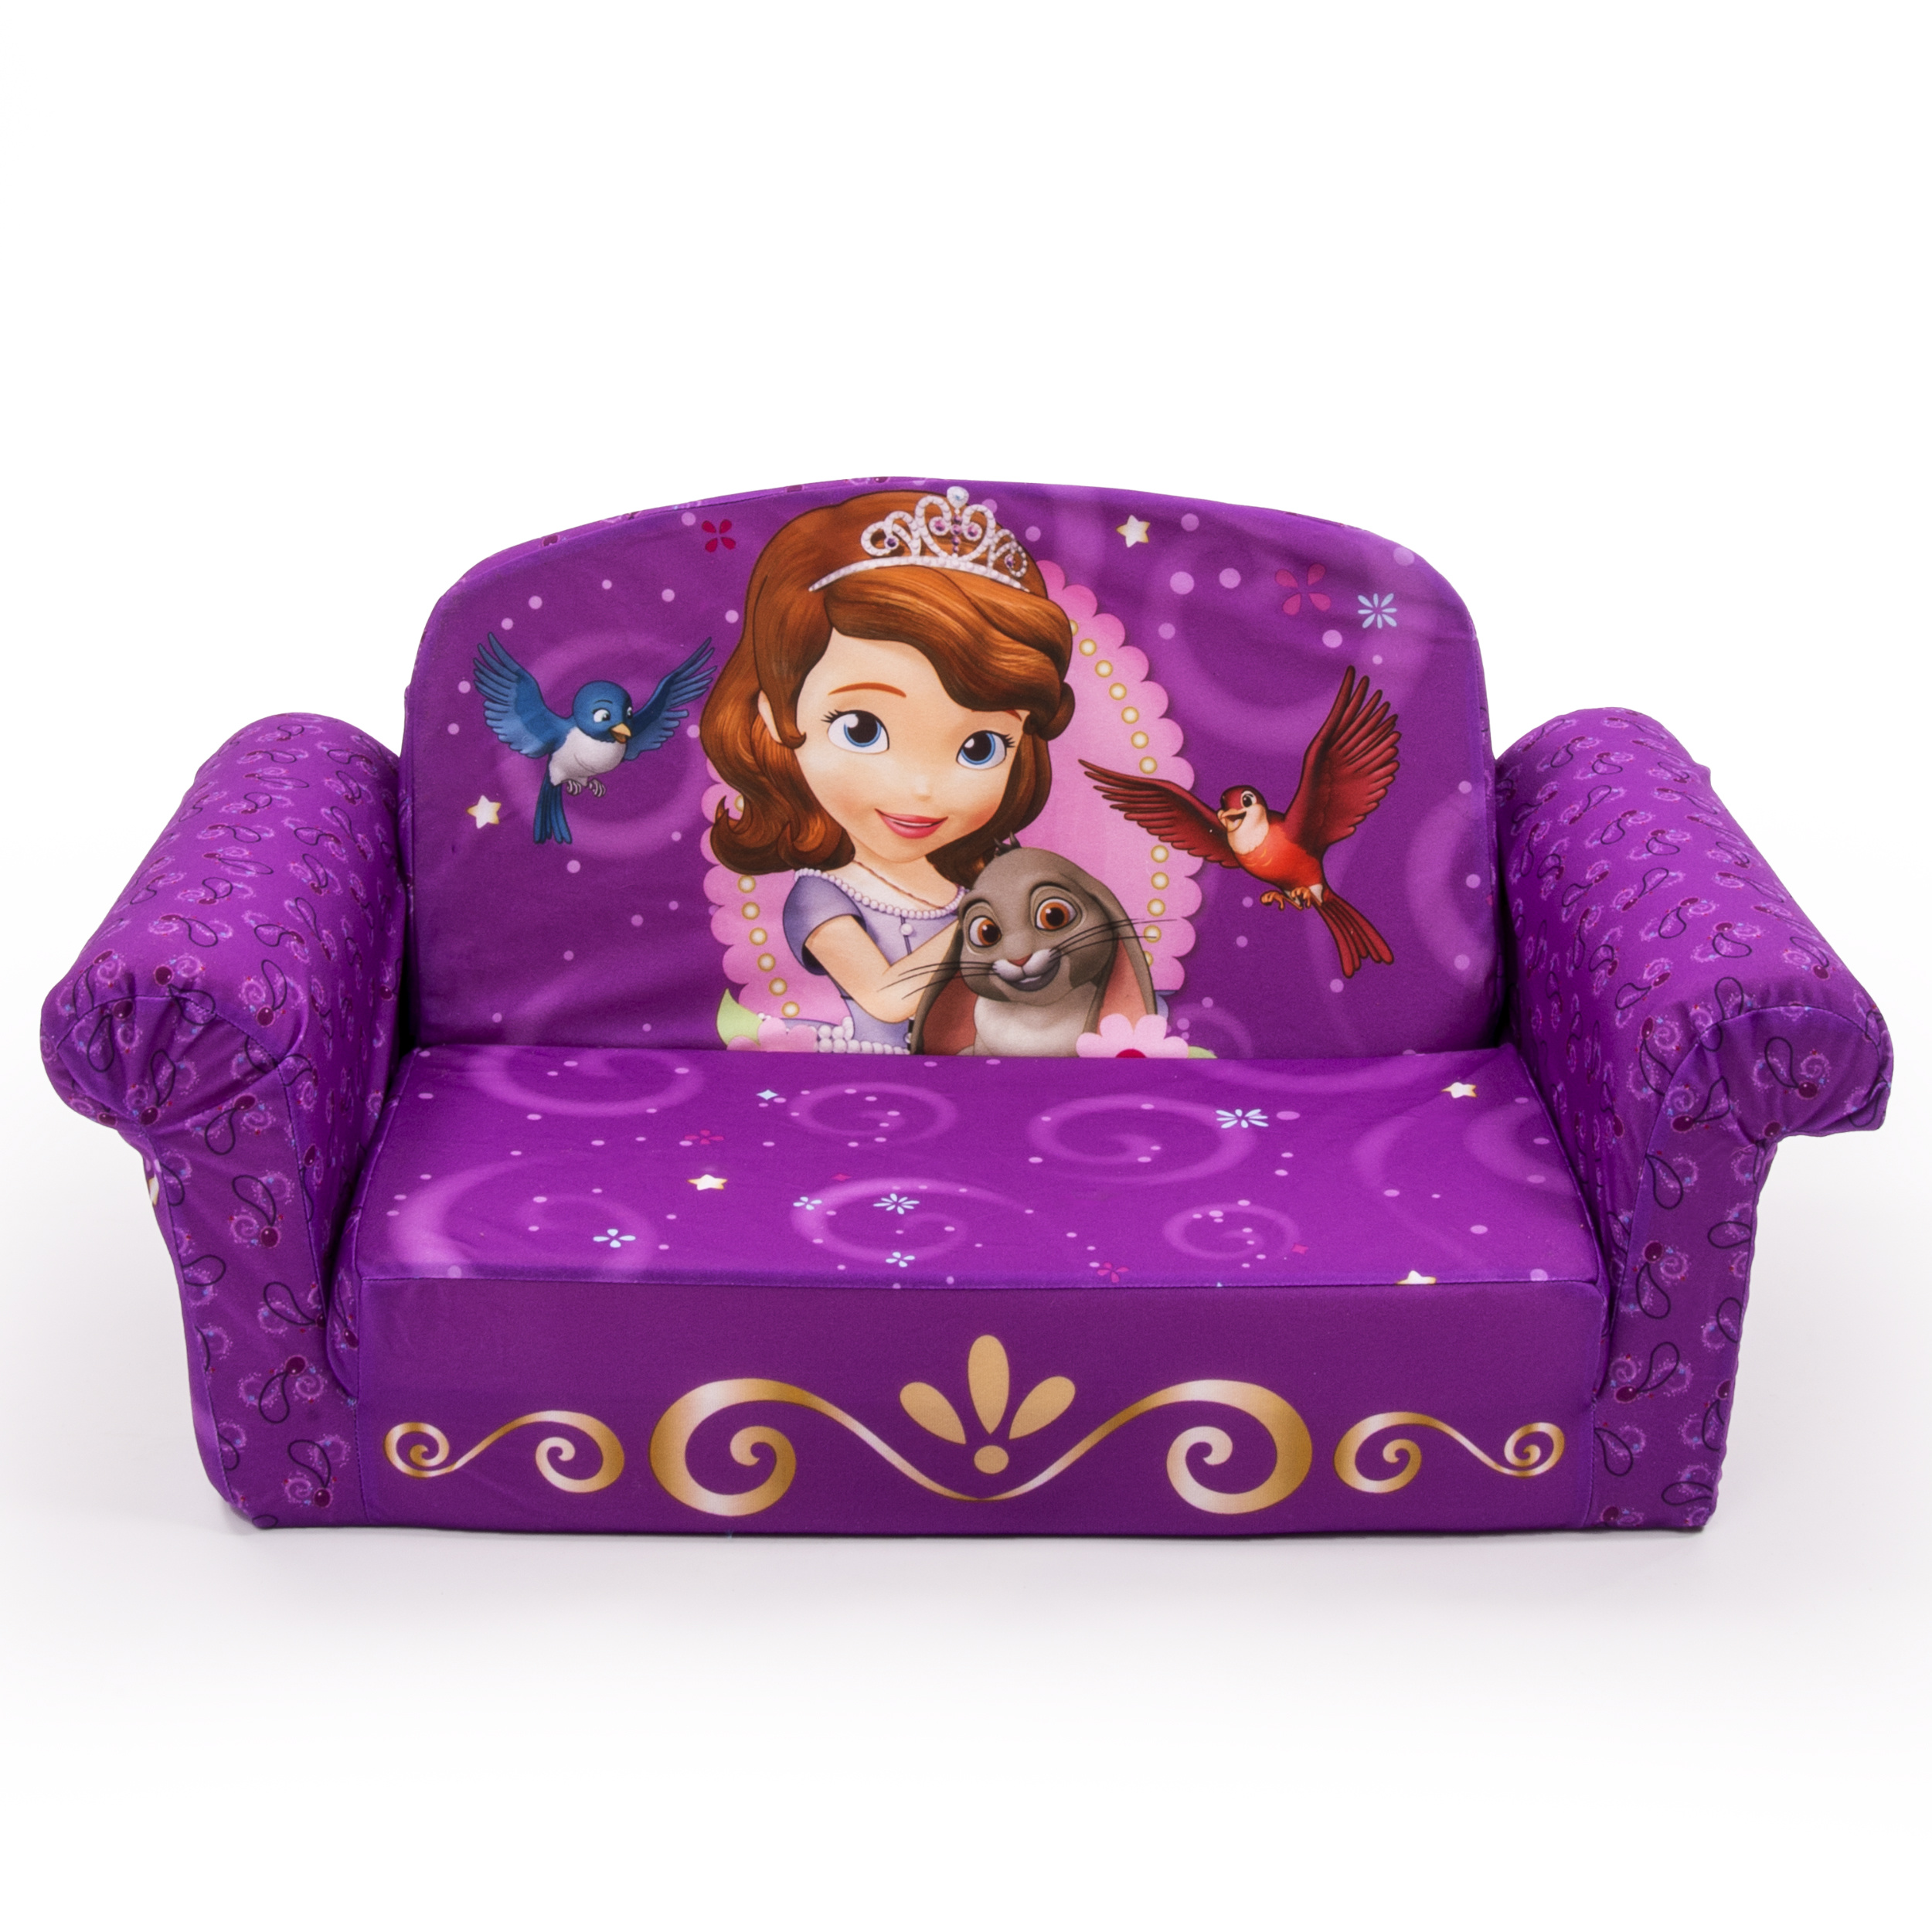 Marshmallow Furniture, Children's 2 in 1 Flip Open Foam Sofa, Disney's Sofia the First, by Spin Master